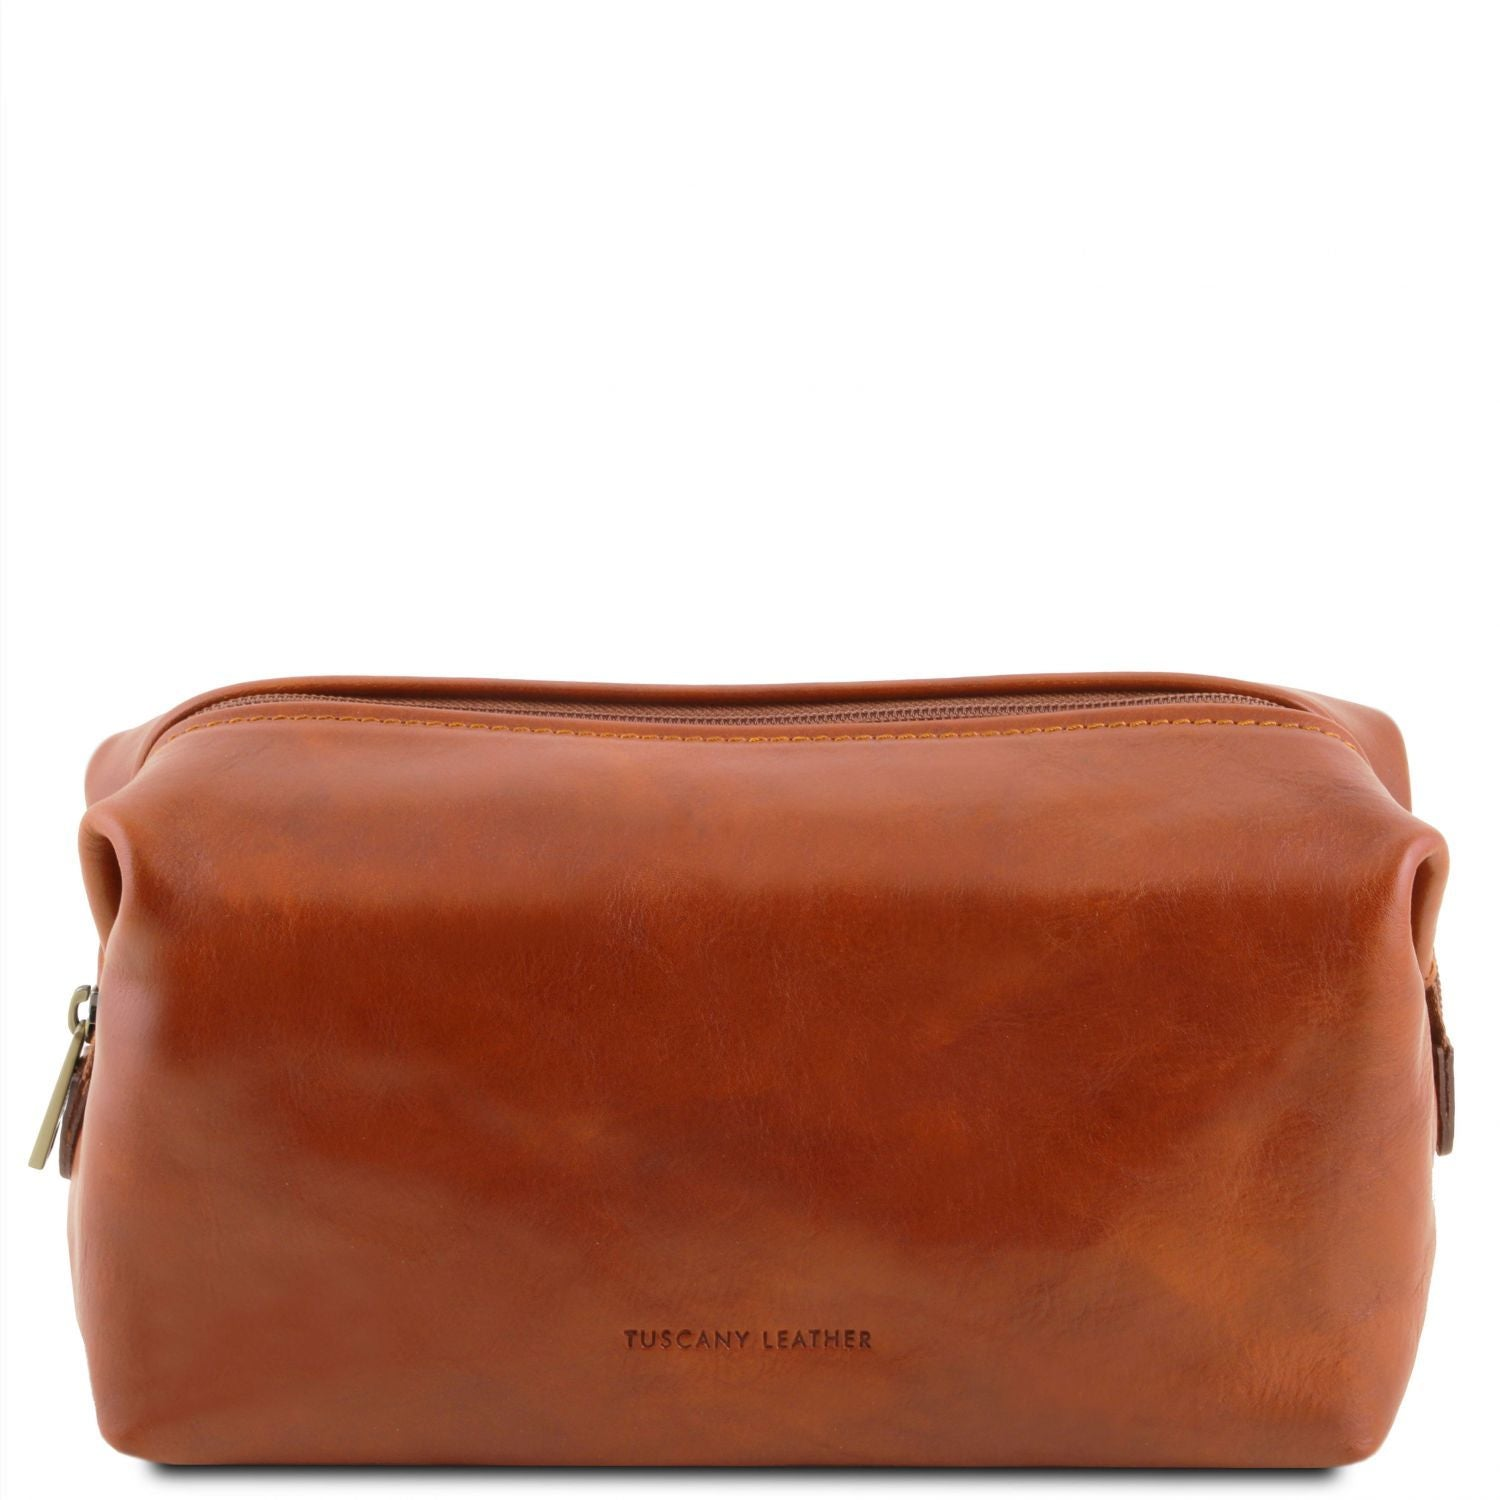 Smarty - Leather toilet bag - Small size (TL141220) - Travel leather accessories | DILUSSOBAGS